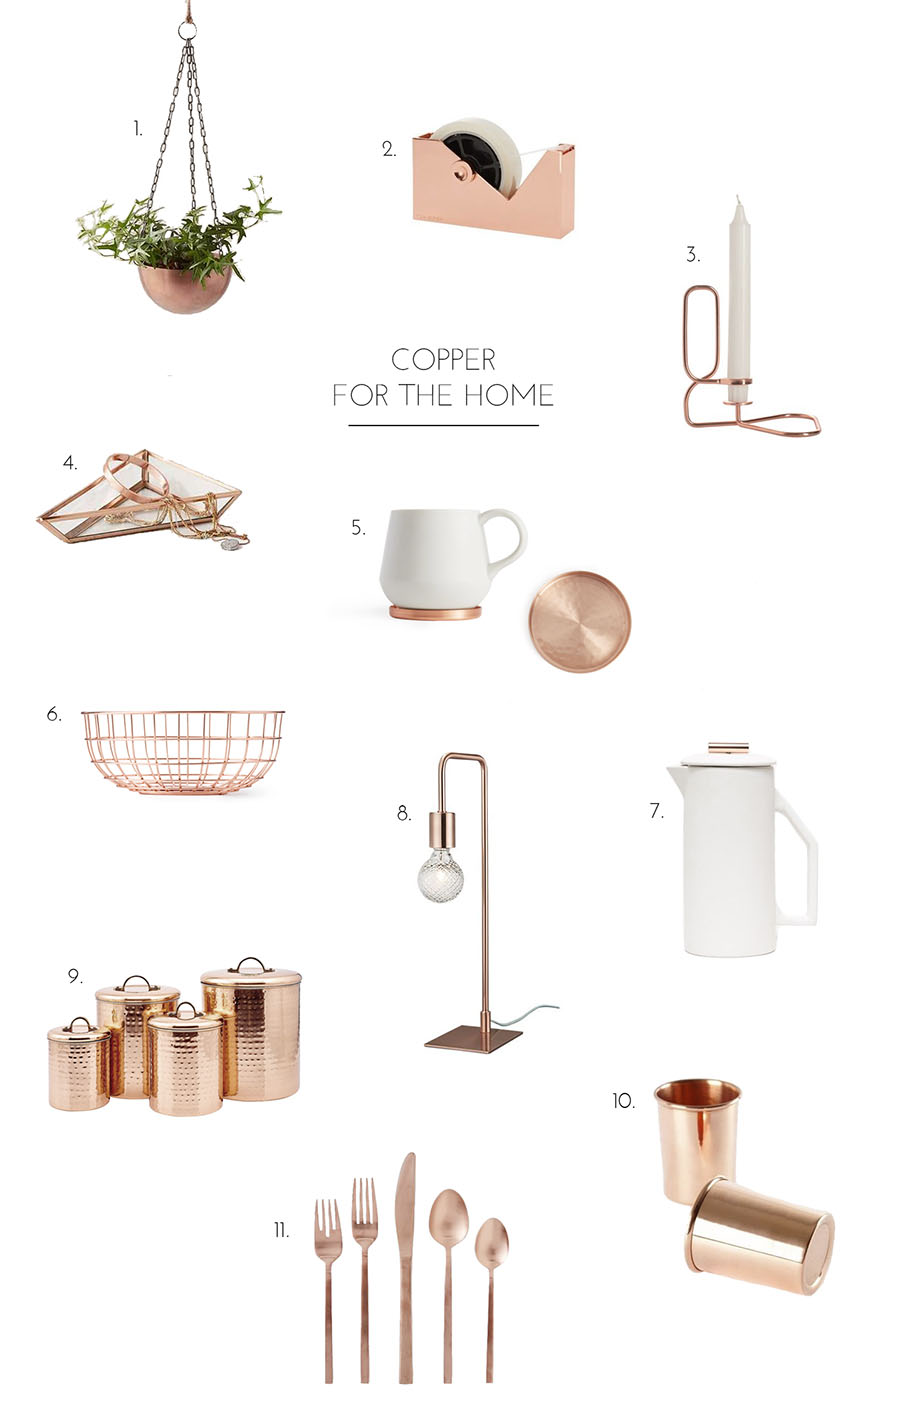 Copper for the home